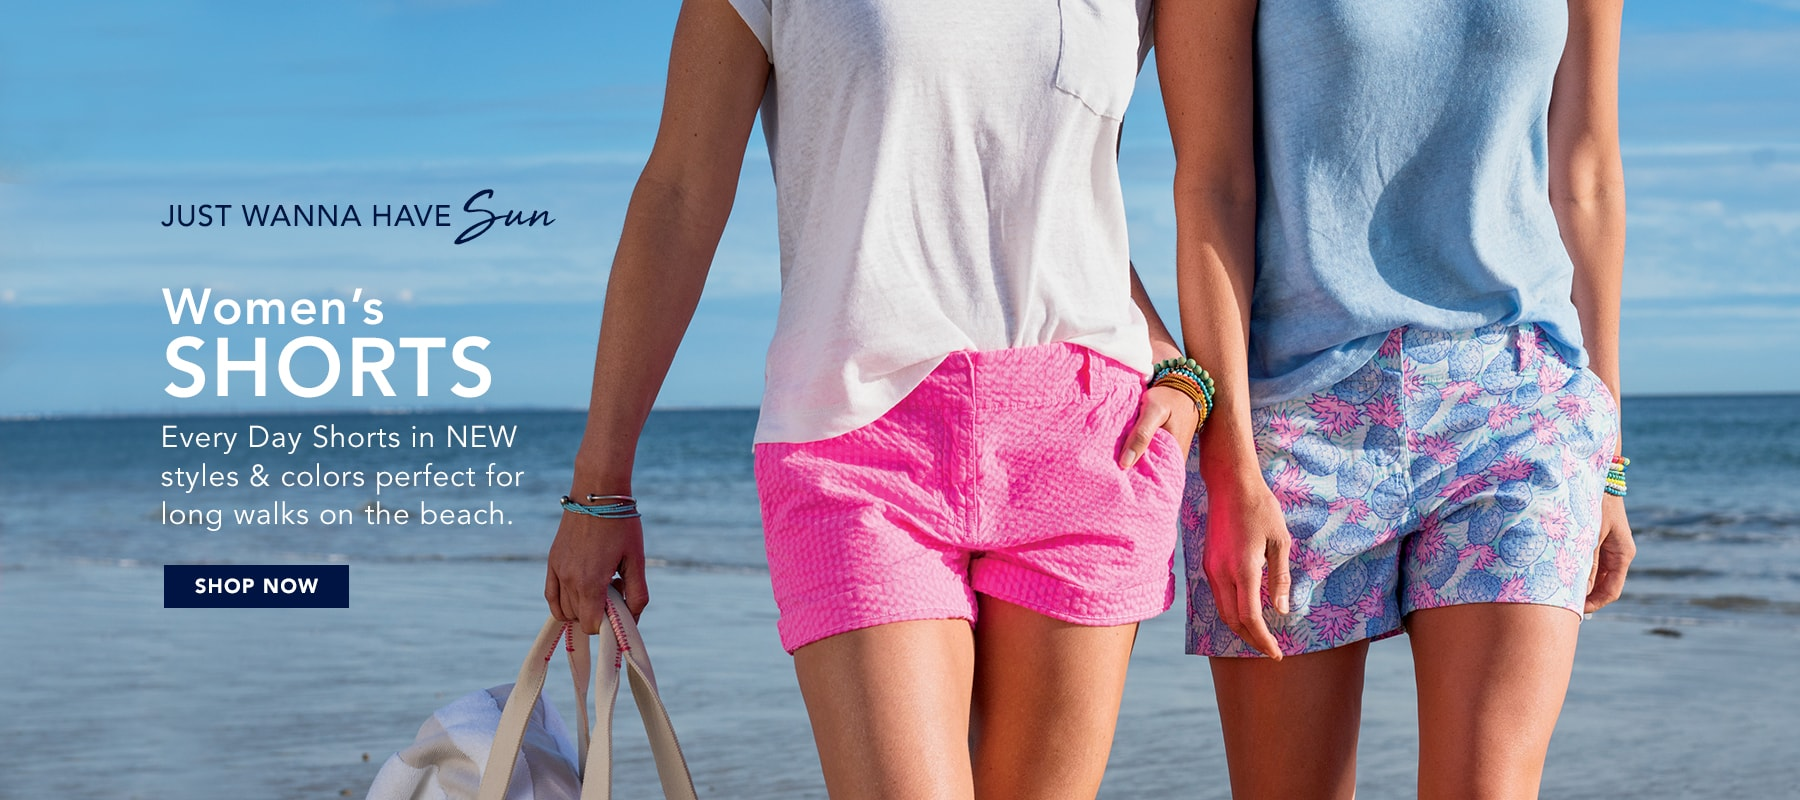 Women's Shorts. Shop mow.